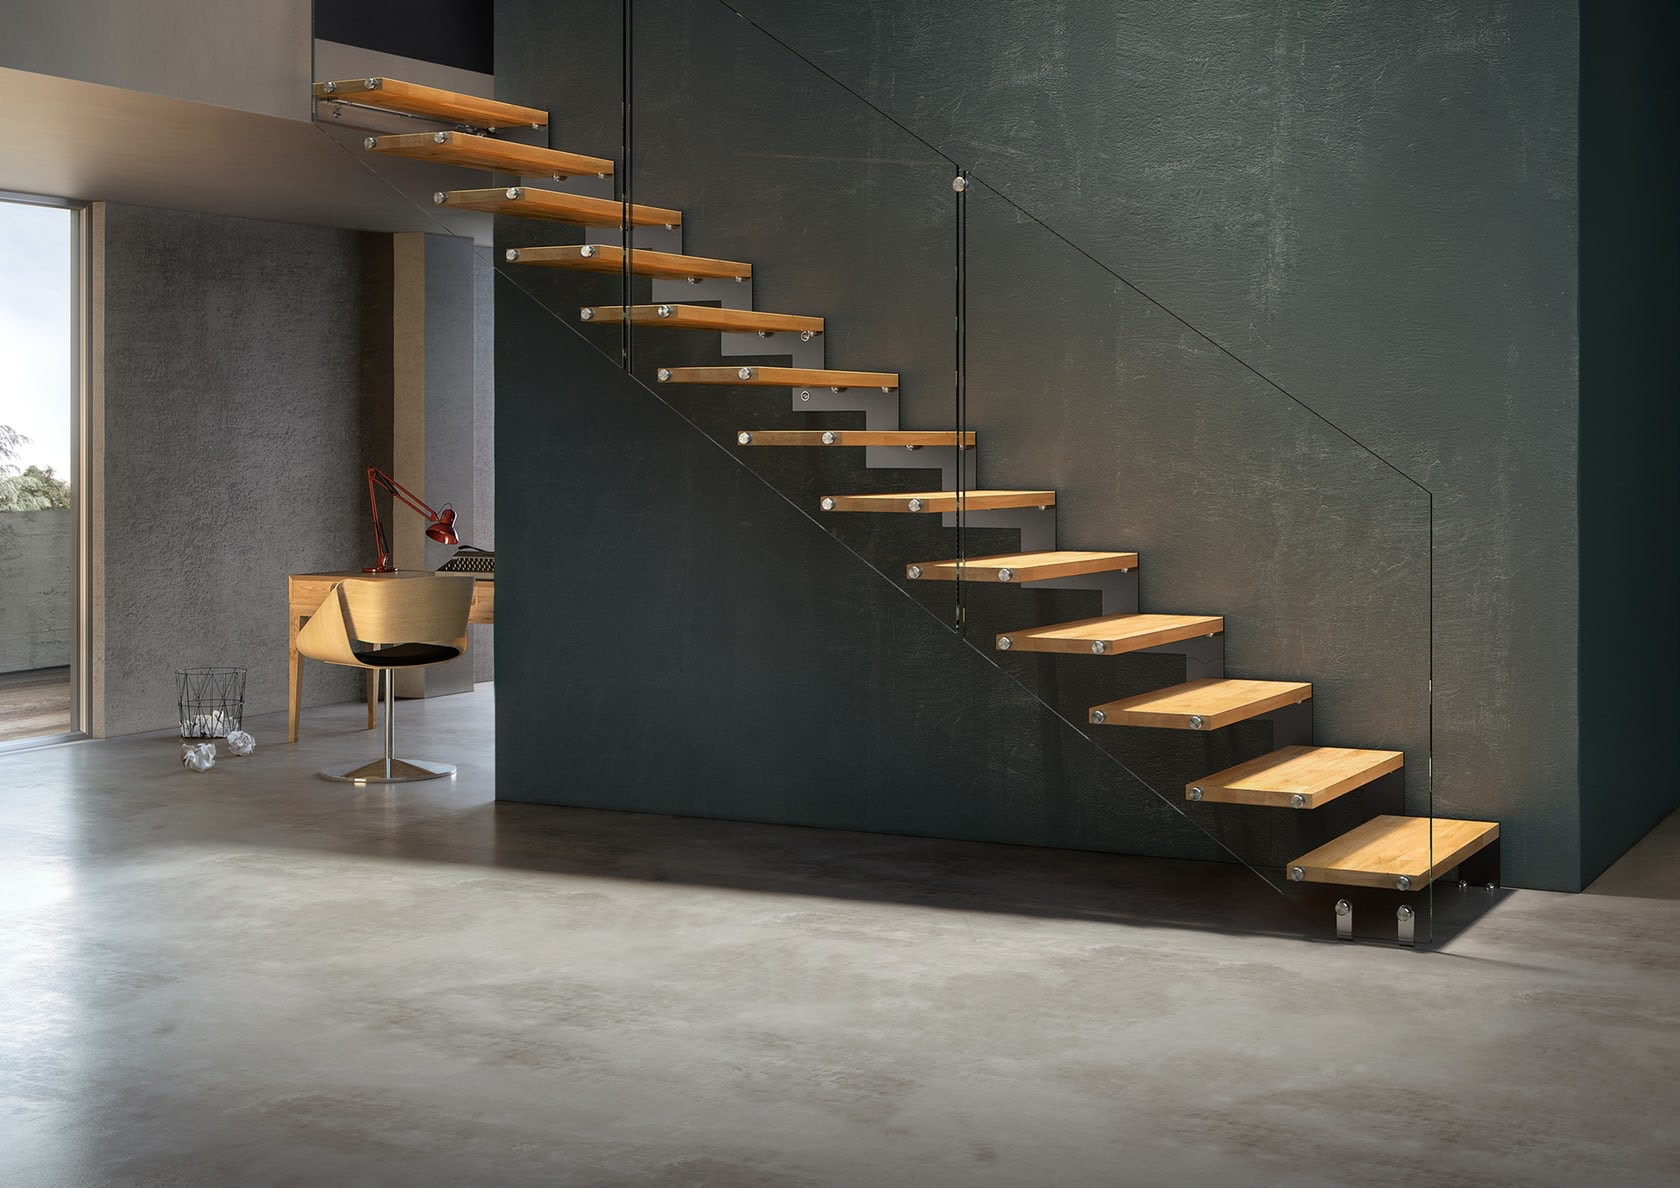 Superb Diagram Of Floating Stair Tread Insert With Wall Inserted Brackets; Image  Via Diamond Stairs